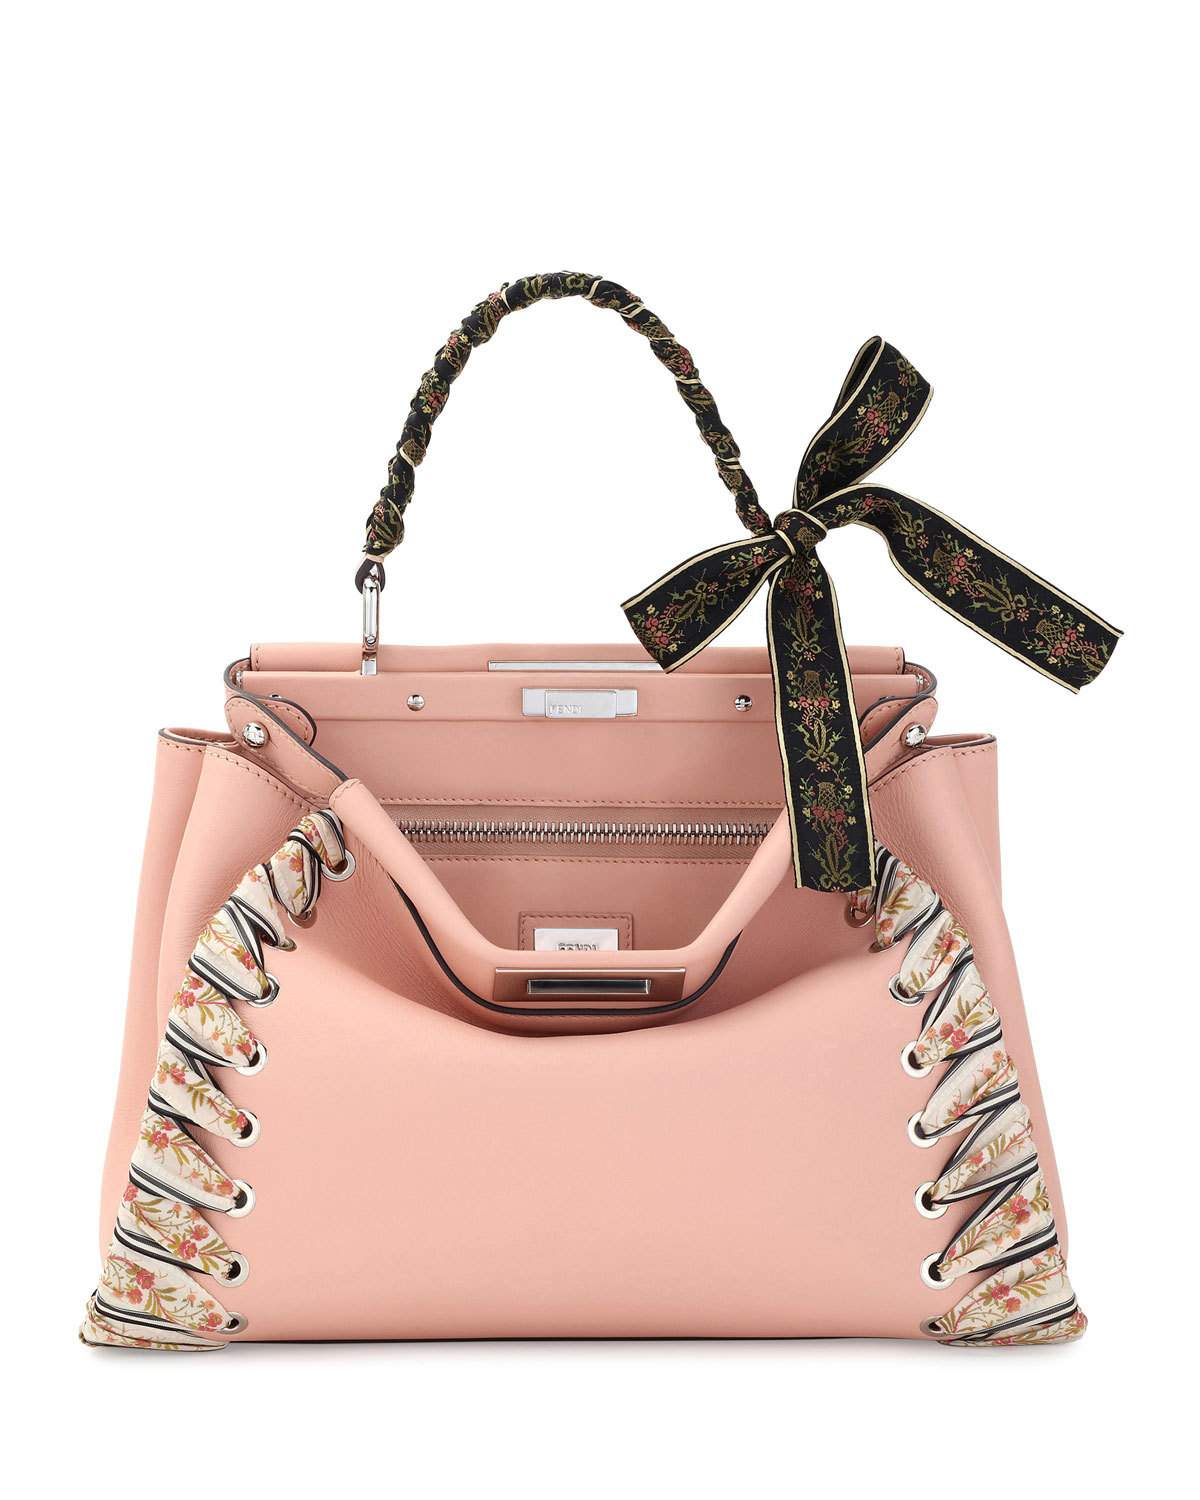 Fendi Resort 2017 Bag Collection Featuring Floral Bags Spotted Fashion